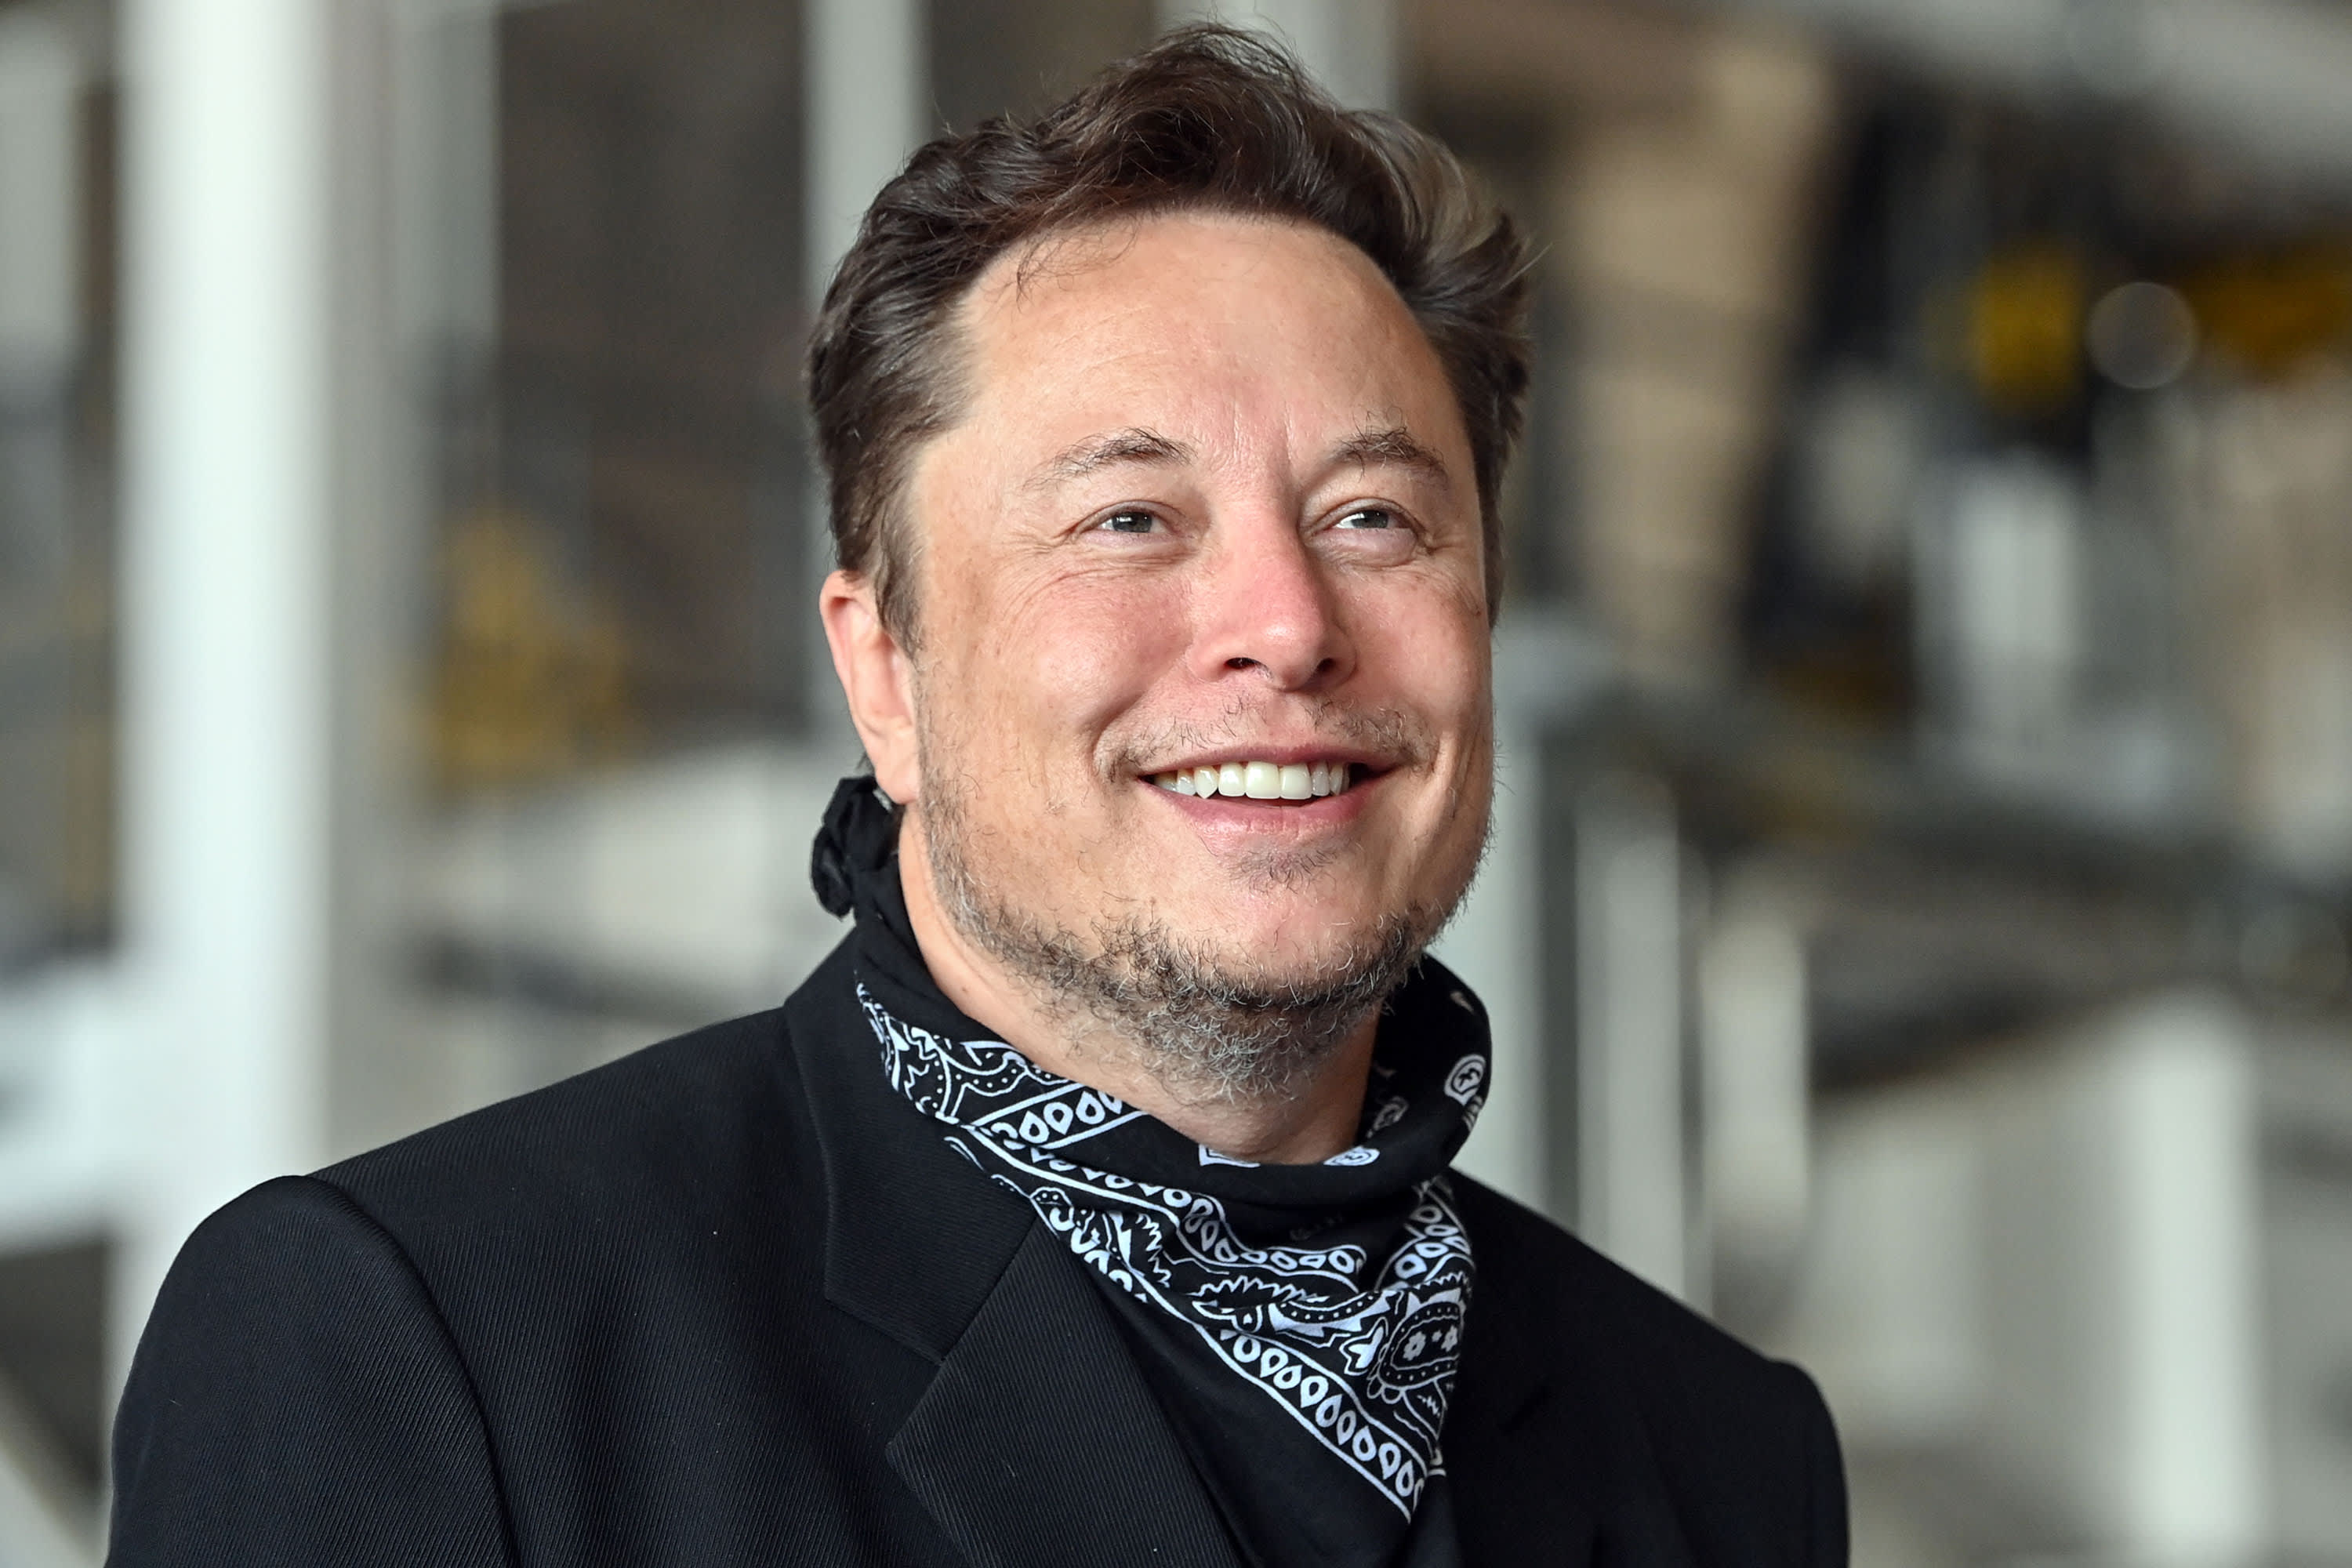 Elon Musk mocks President Biden after SpaceX completes first all-civilian mission